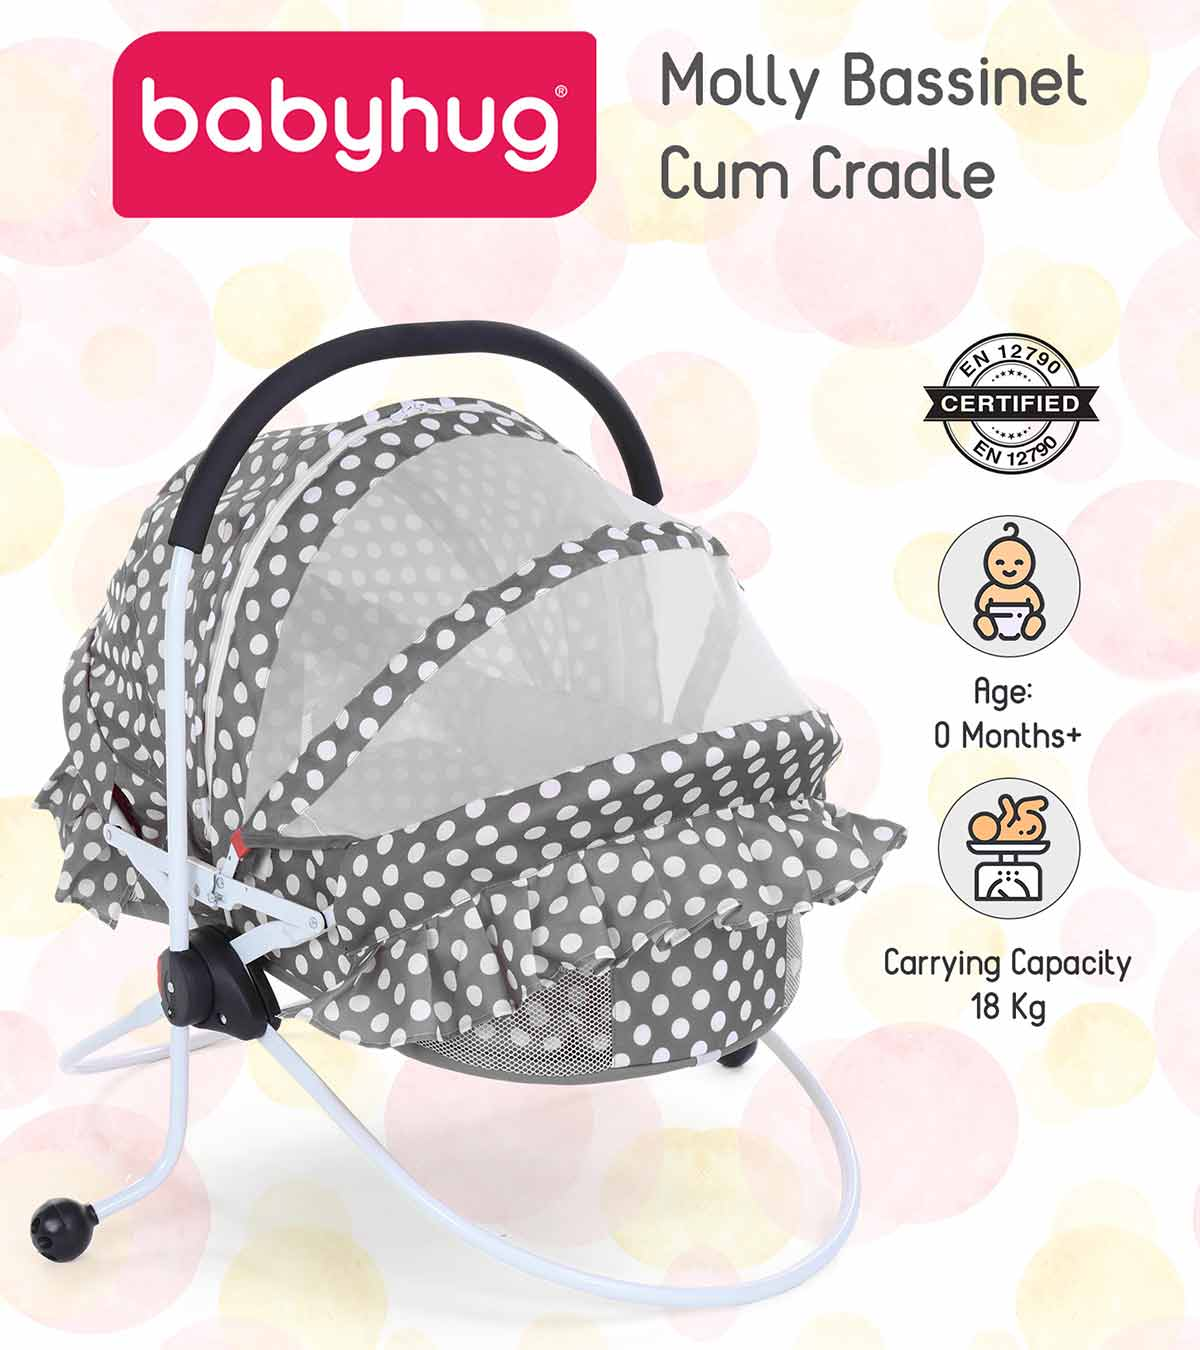 Babyhug Molly Rocking Bassinet Cum Cradle With Storage Space